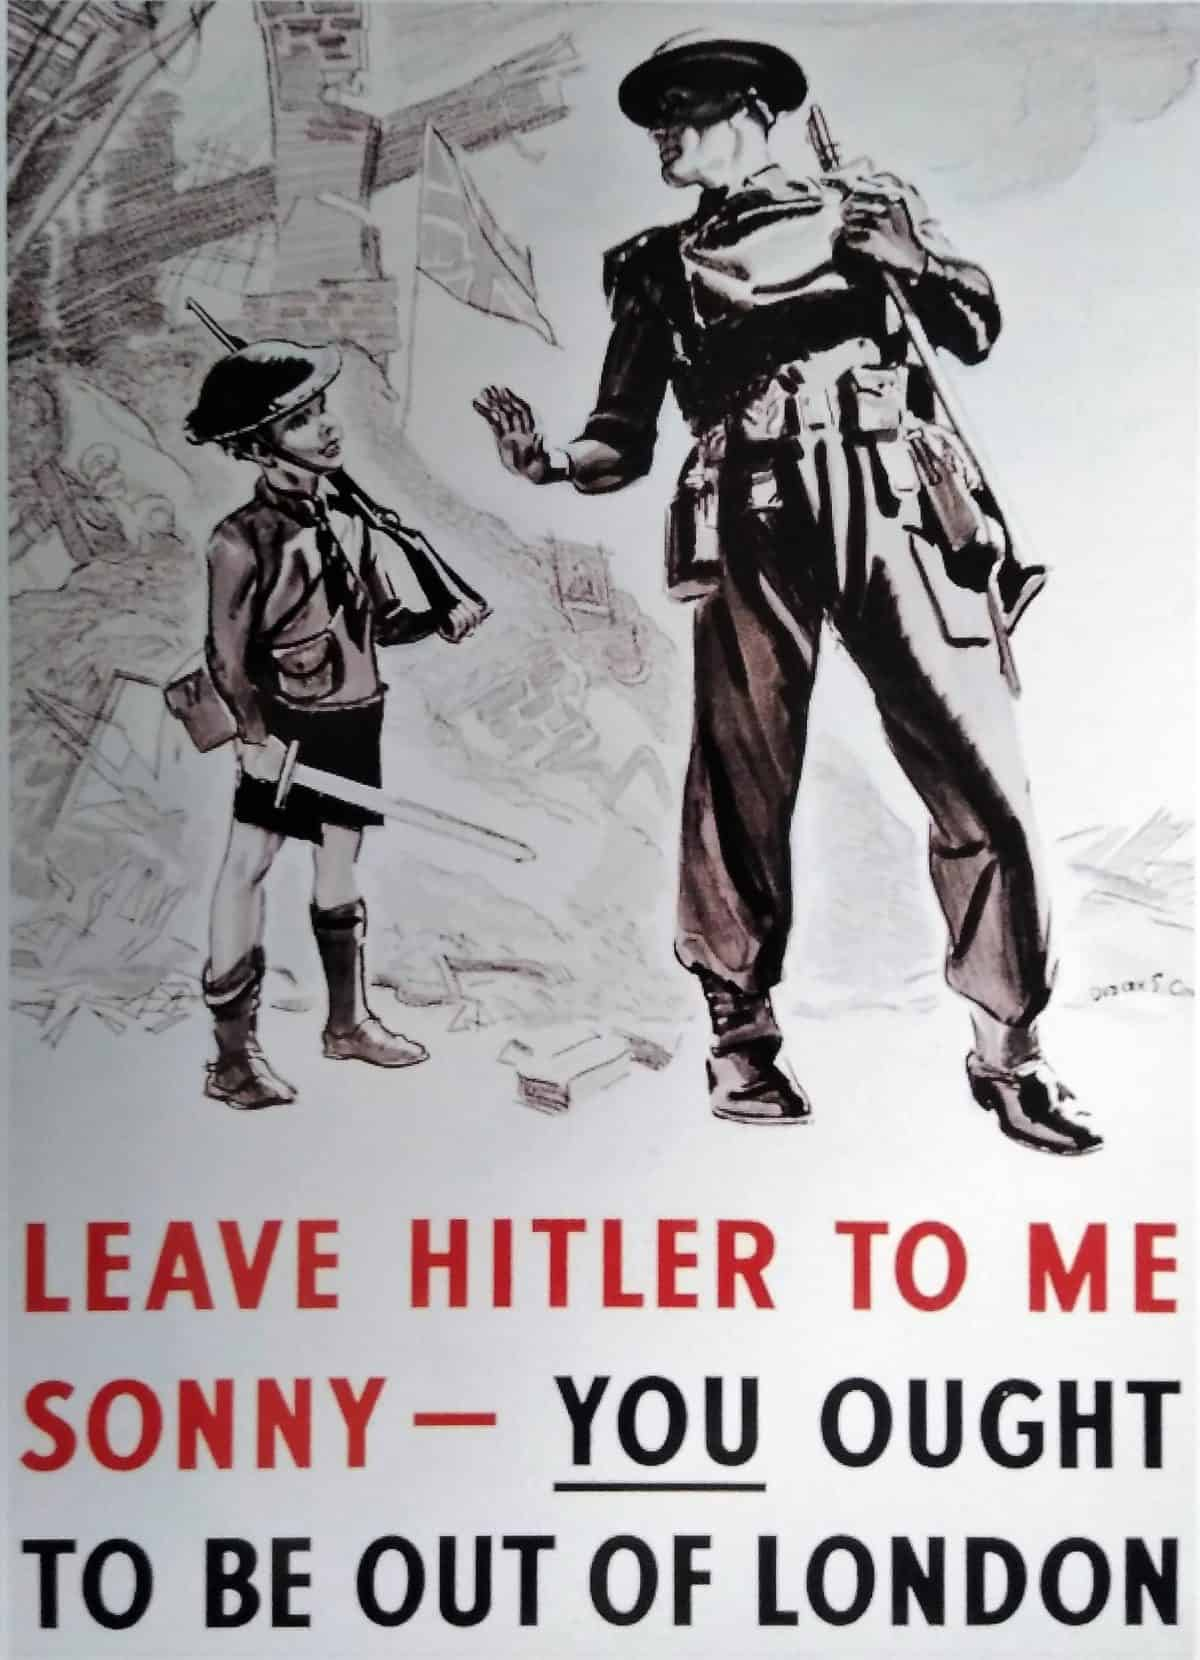 WW2 9 Evacuation poster - Leave Hitler to me sonny (cropped)